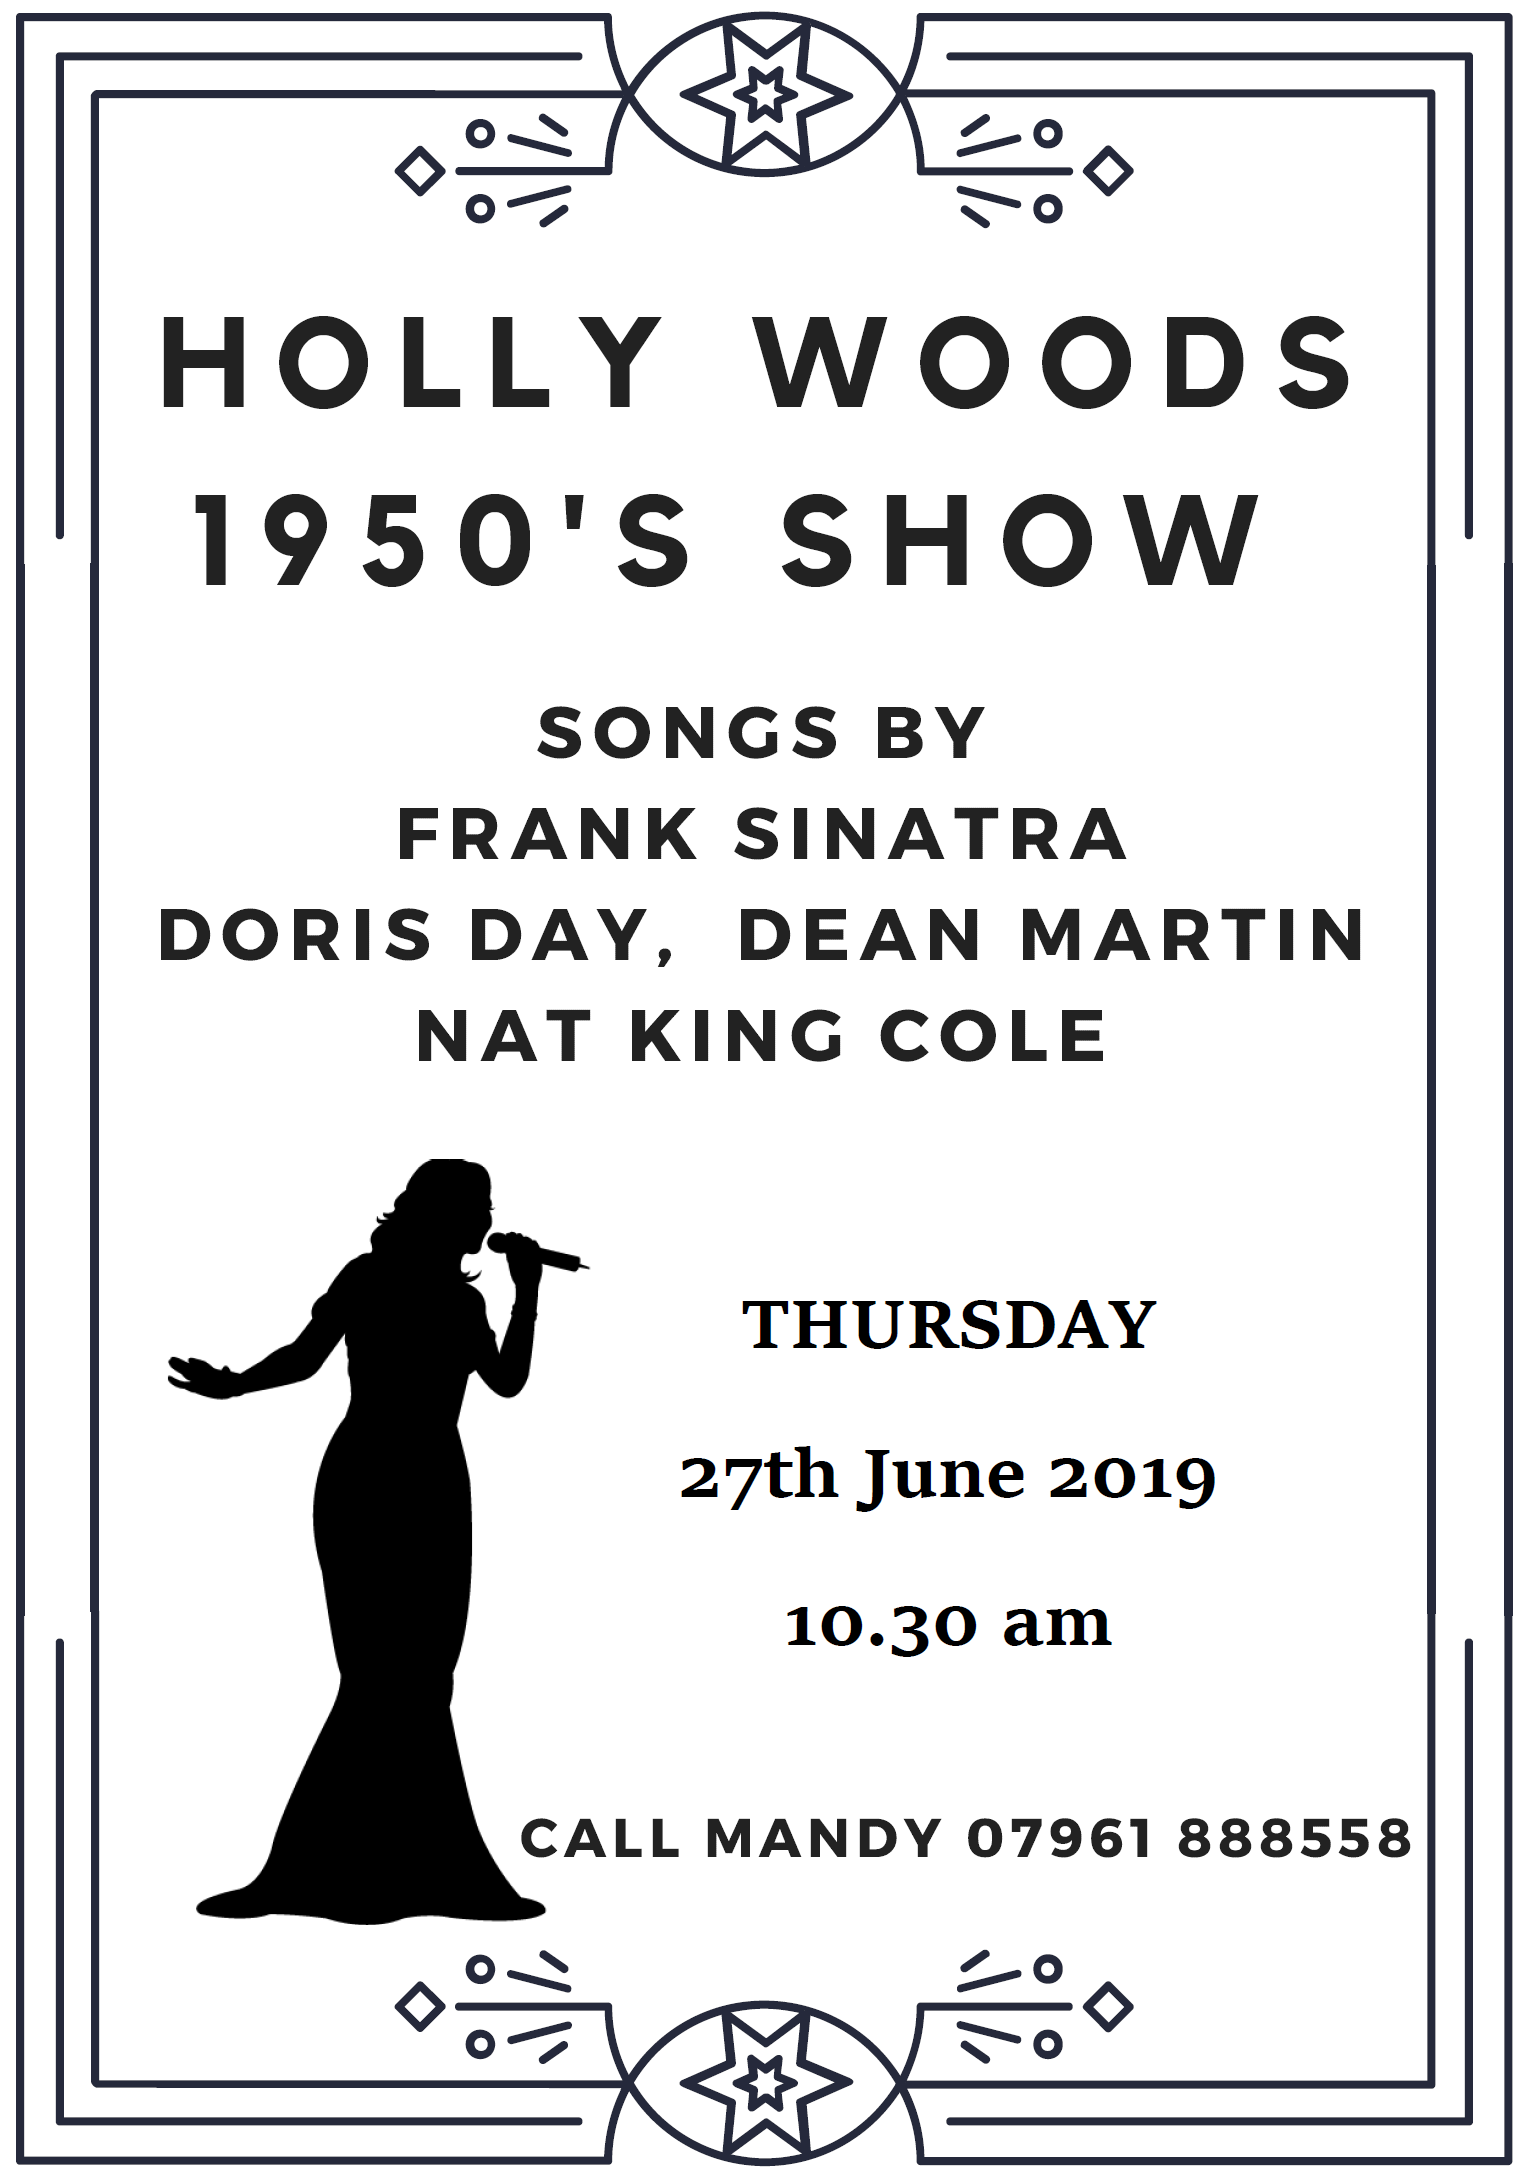 Holly Woods 1950s Show